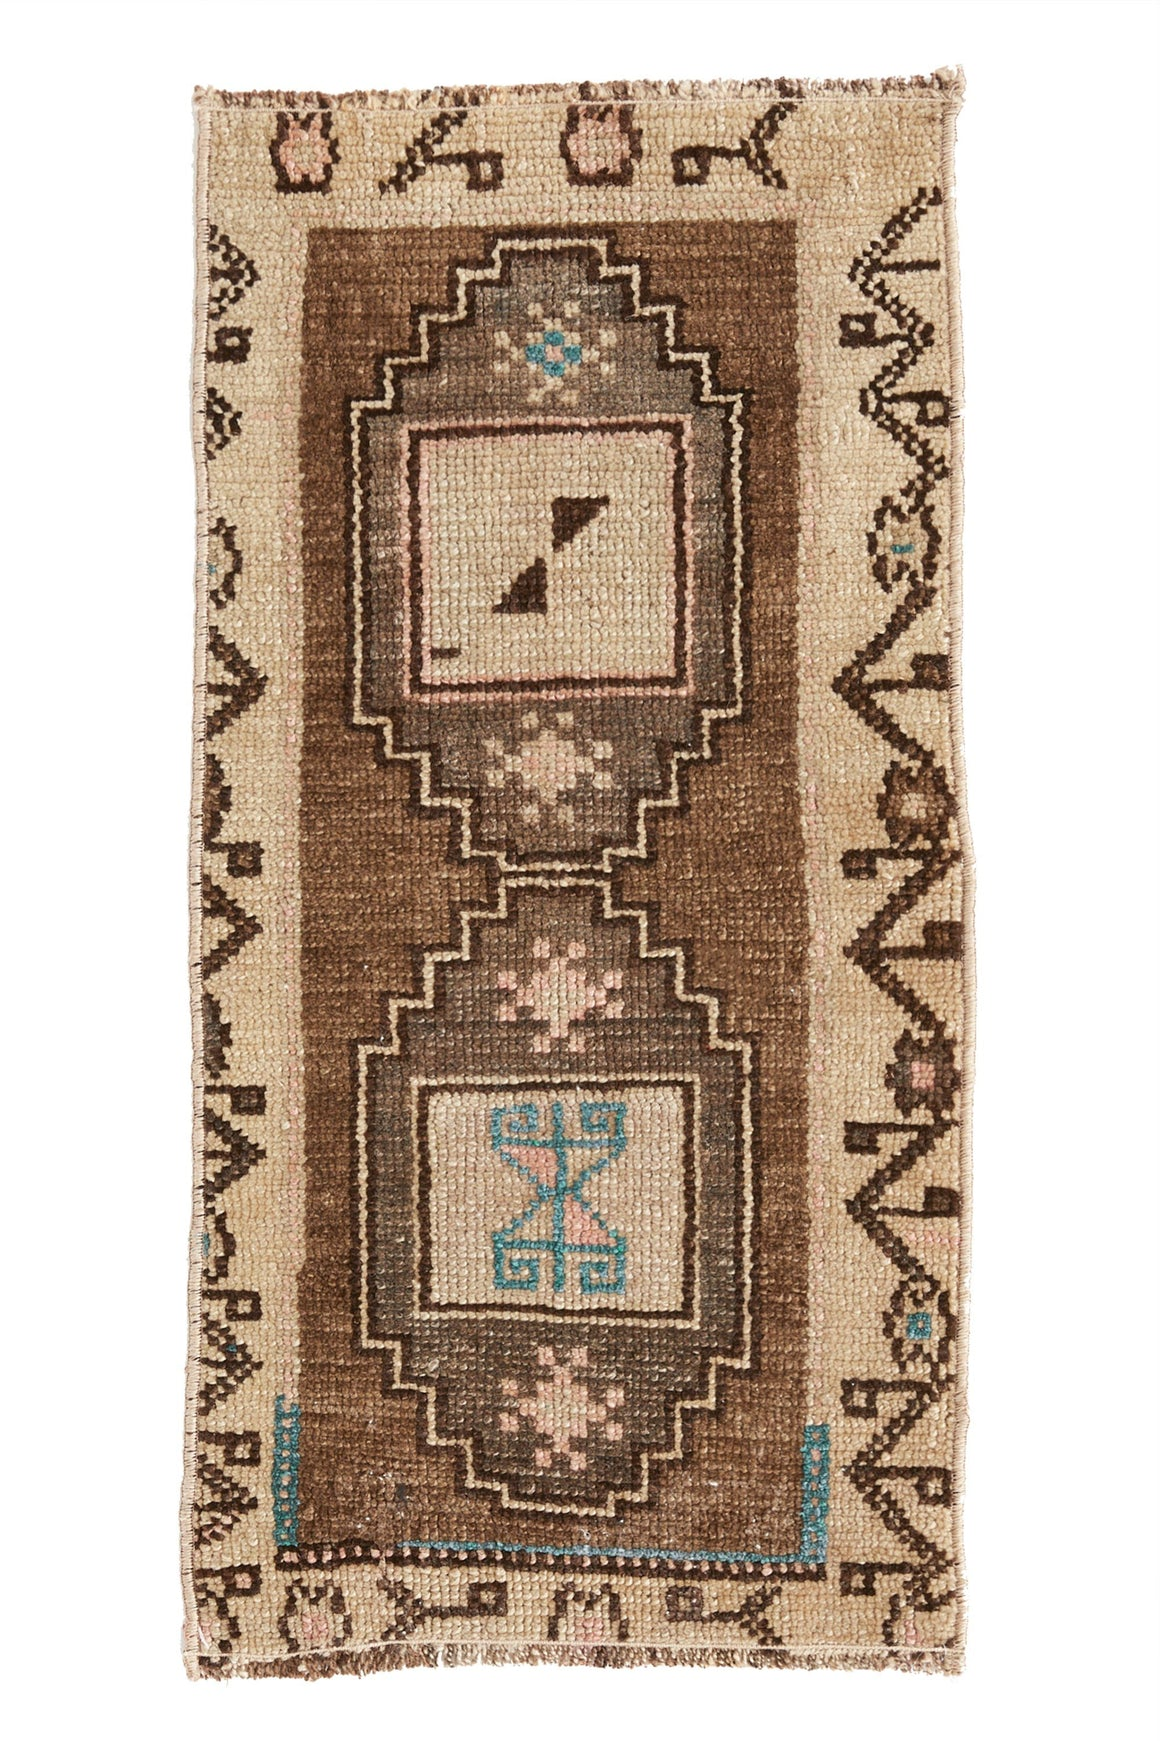 No. 404 Petite Vintage Rug - 1'3.5'' x 2'2'' - Canary Lane - Curated Textiles